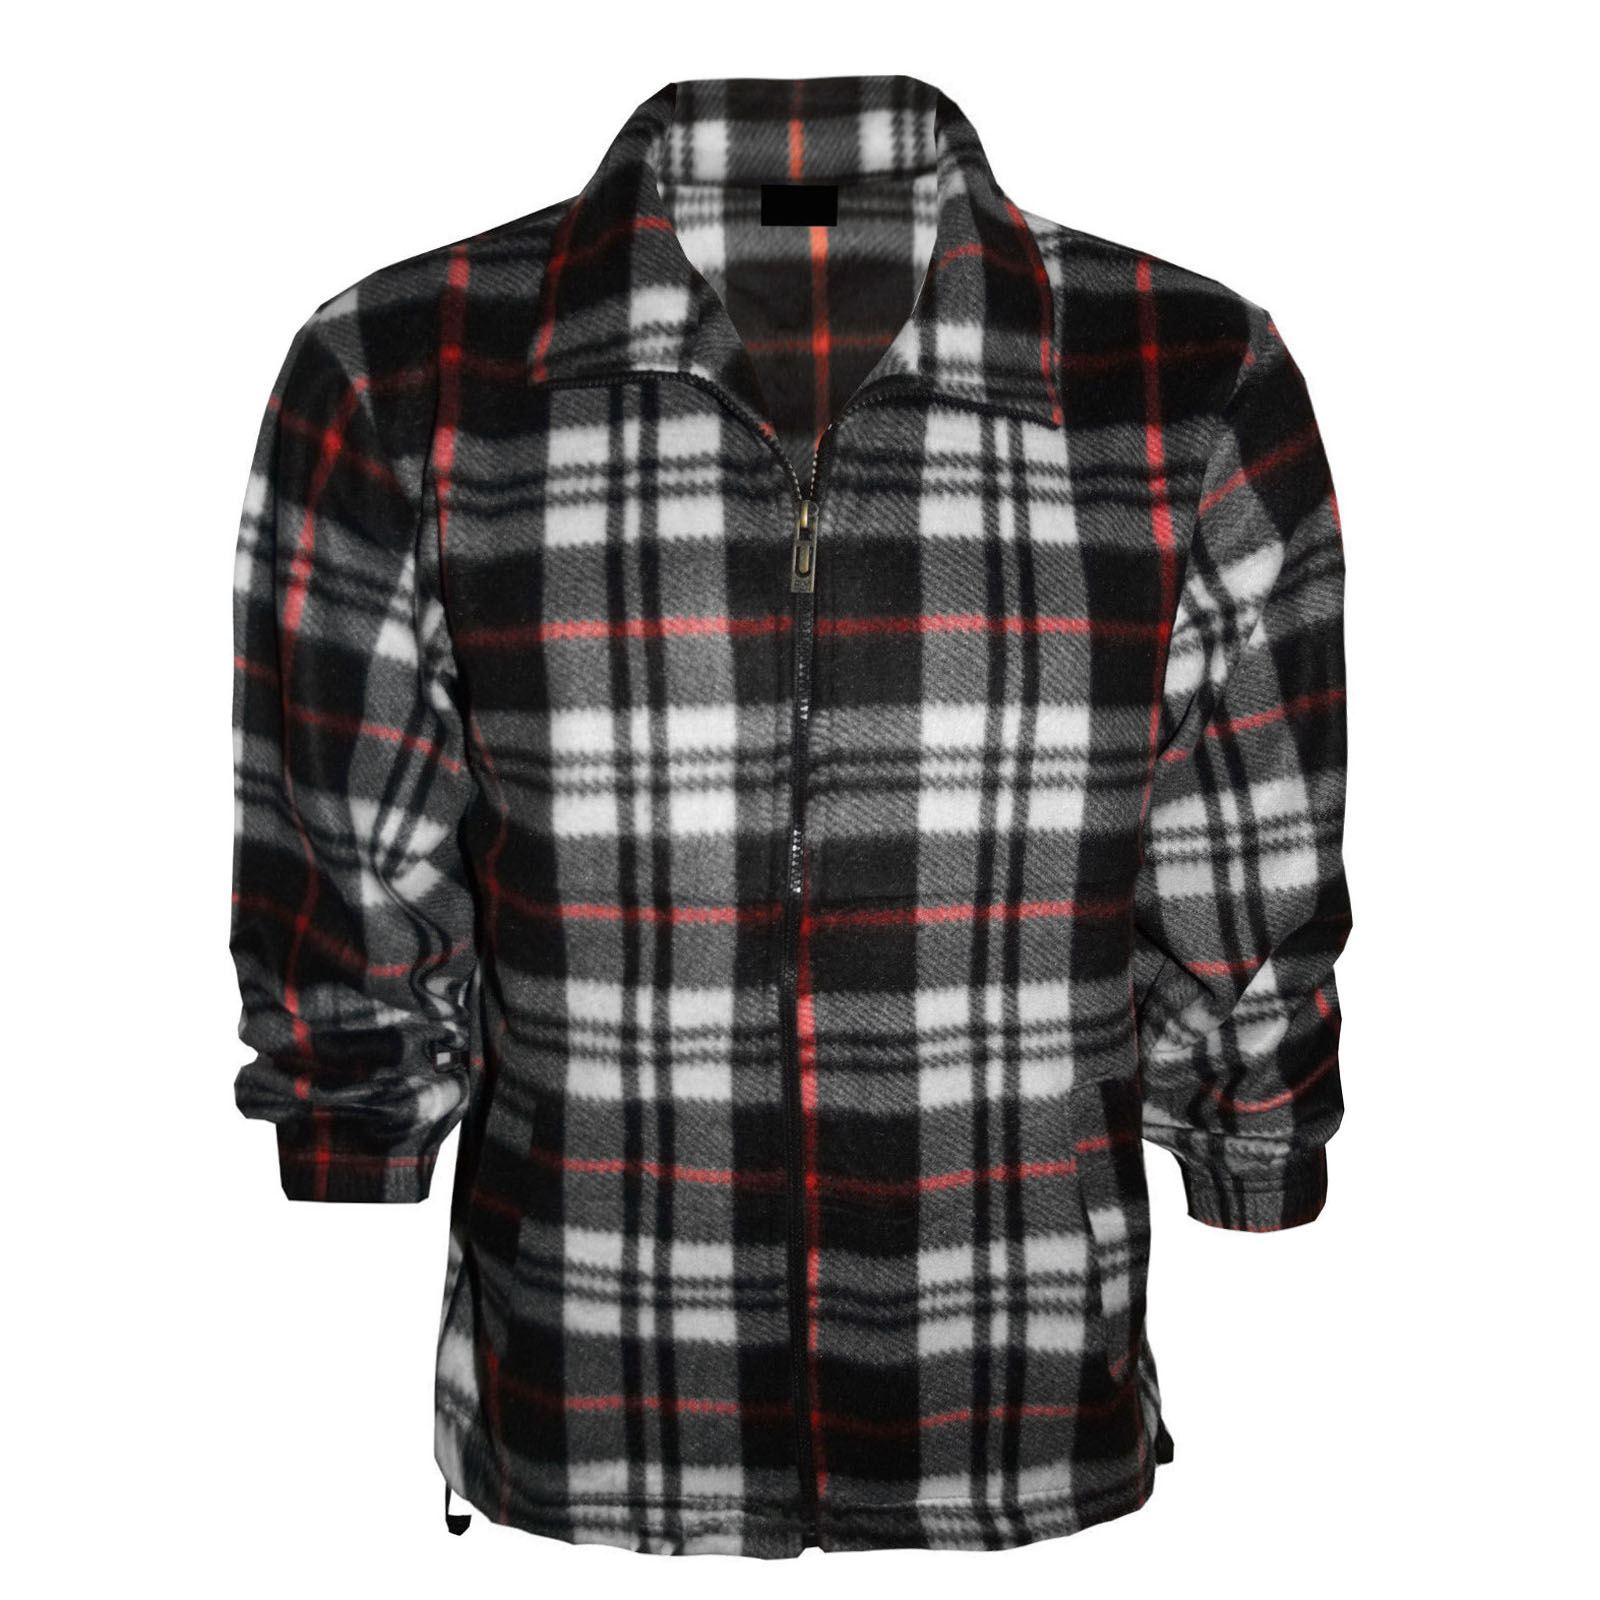 mens fleece shirts check lumberjack thermal flannel tops winter warm work m 4xl. Black Bedroom Furniture Sets. Home Design Ideas